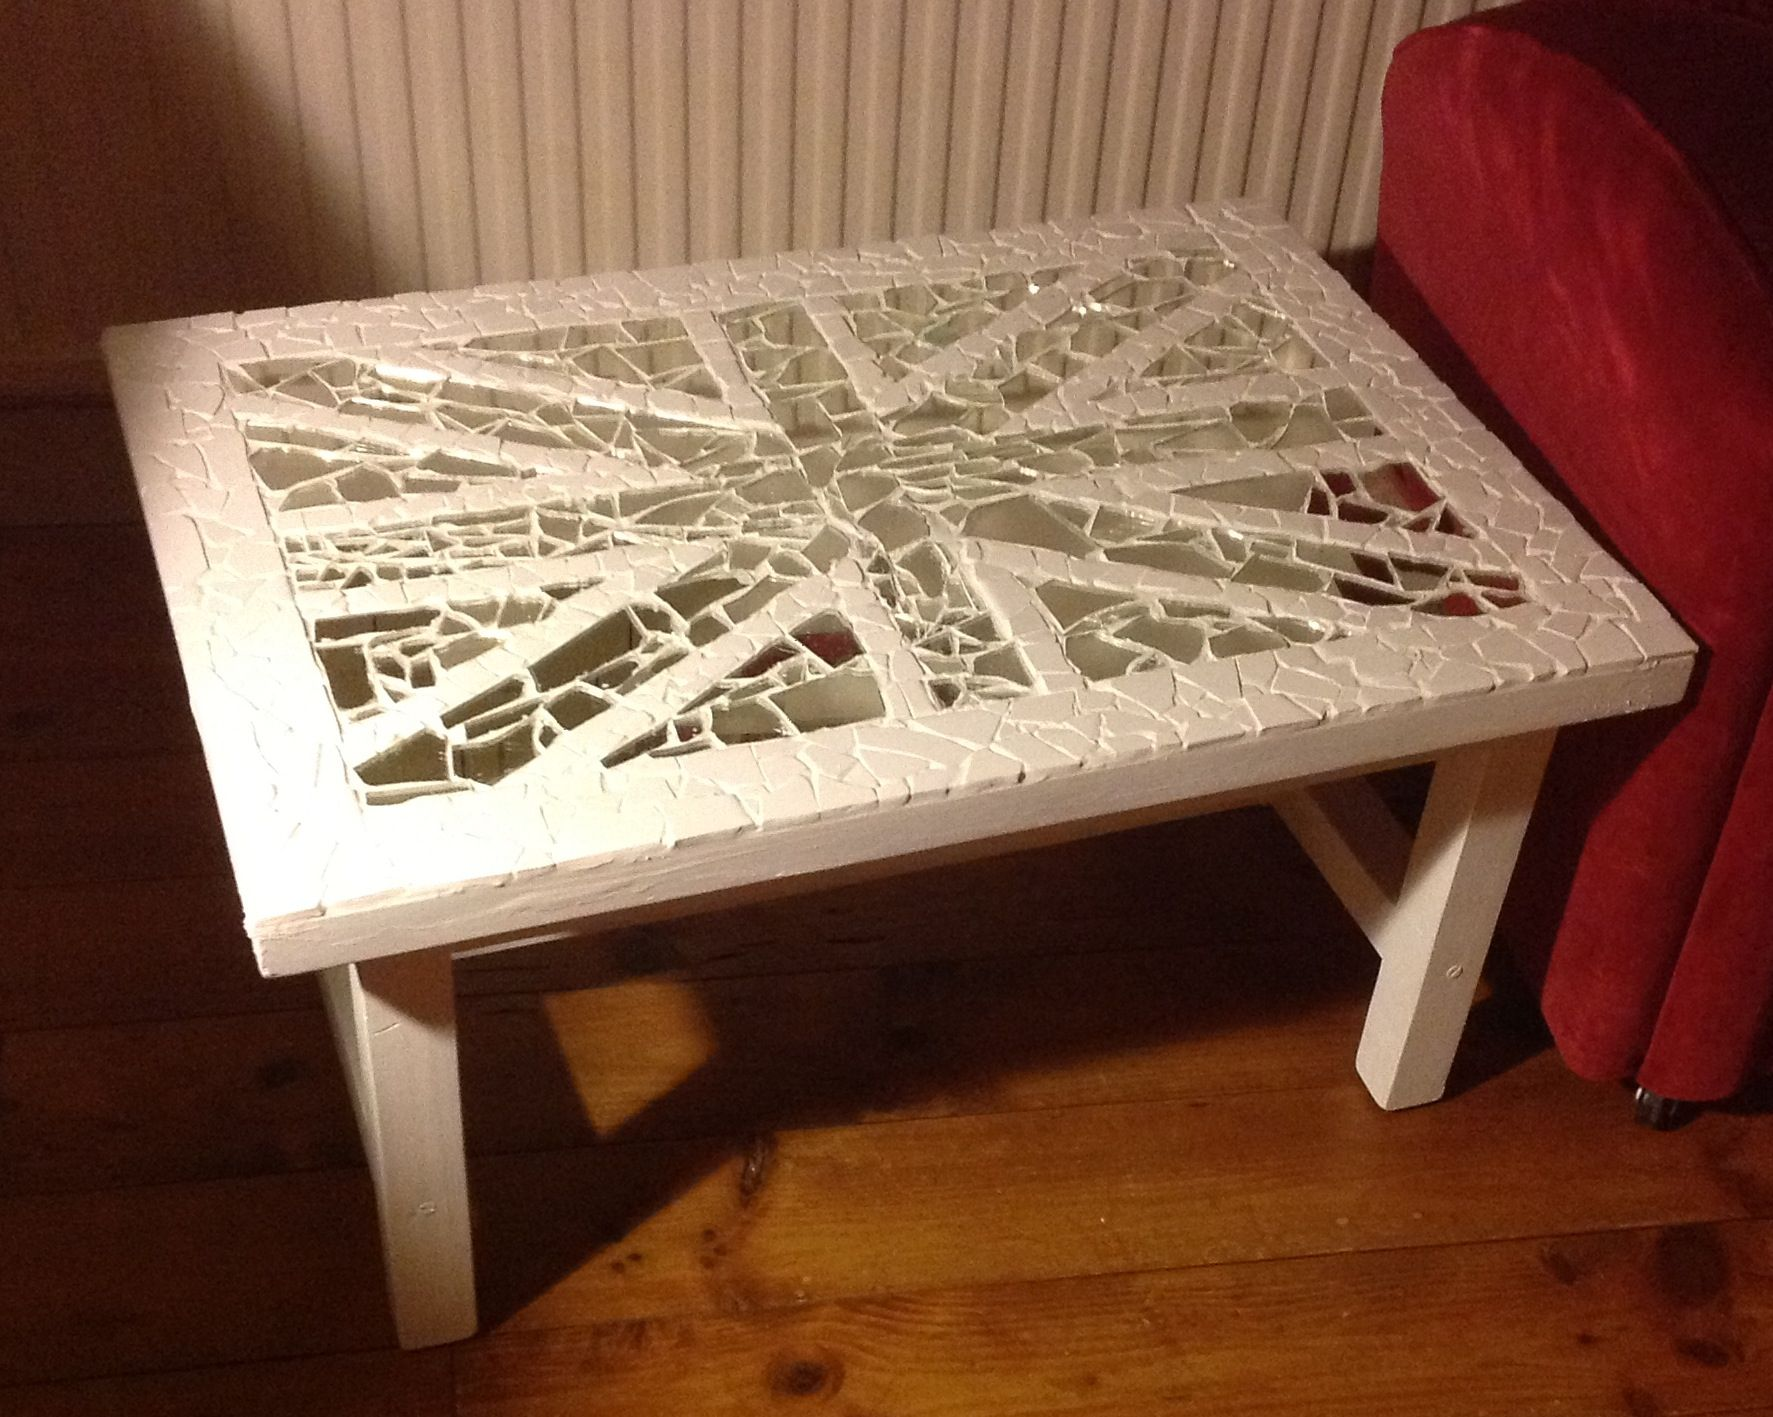 Mirror mosaic coffee table Hobbies Pinterest Mirror mosaic